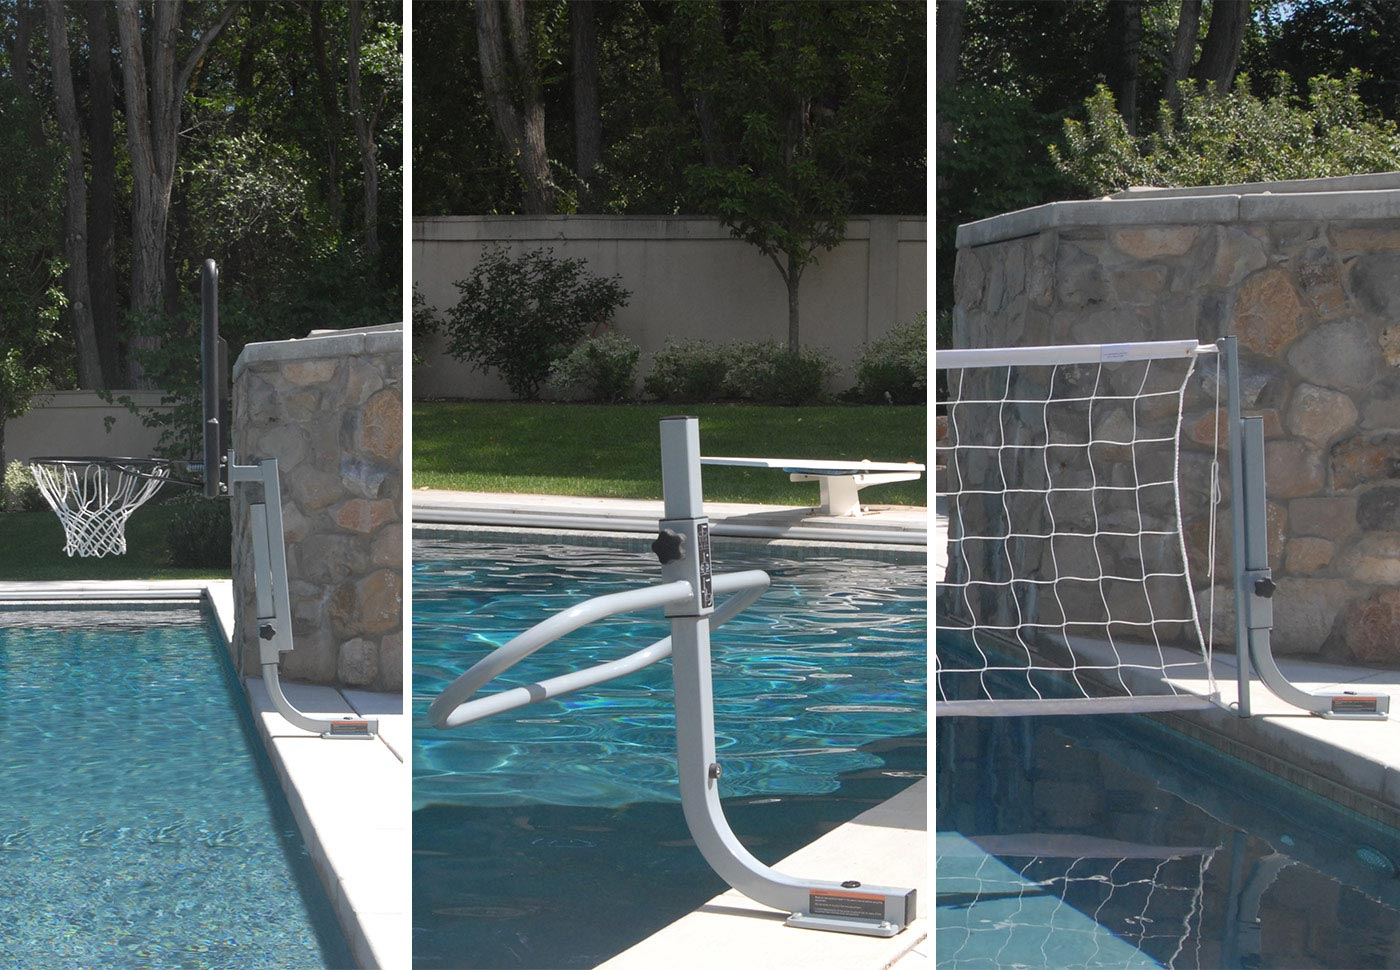 TRIPLE PLAY COMBO - With On-Deck Anchor System BOXES A, A, C, D, E, F - SwimShape